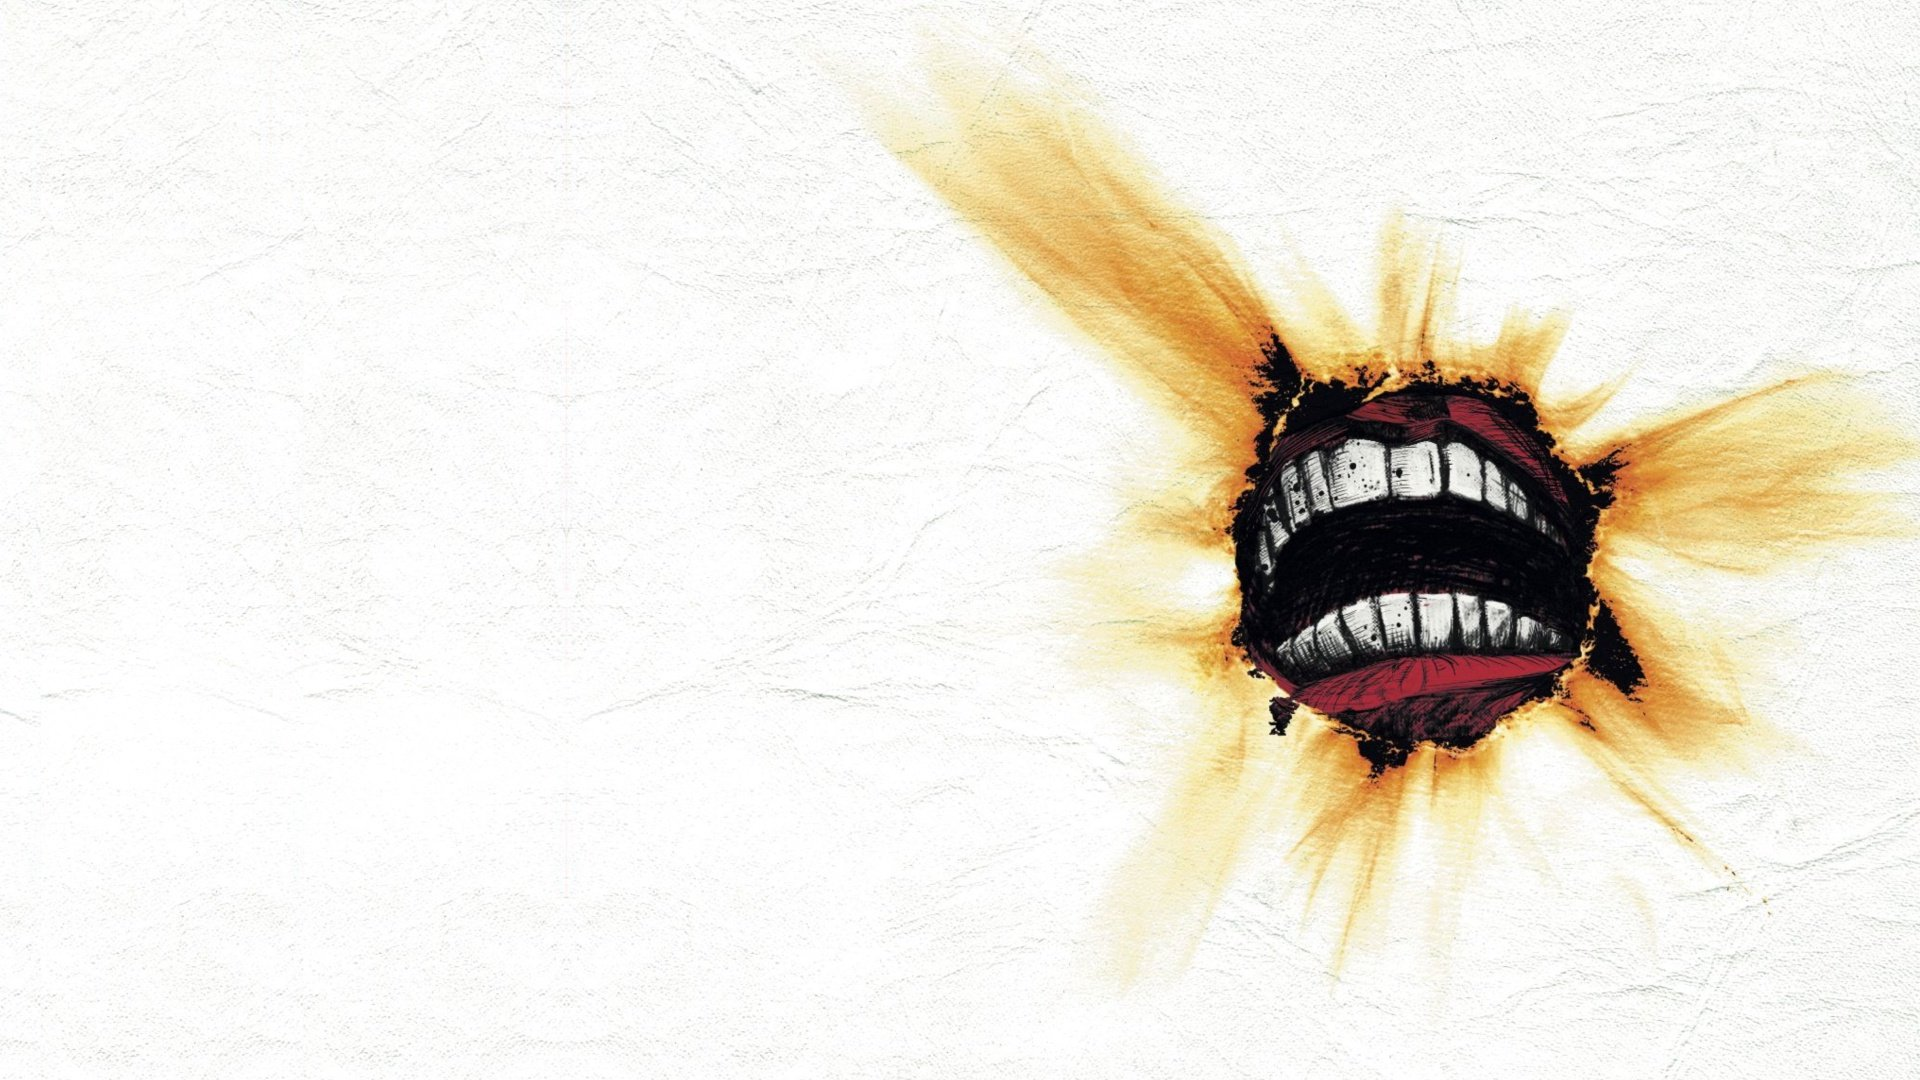 Music mouth Billy Talent album covers simple background 1920x1080